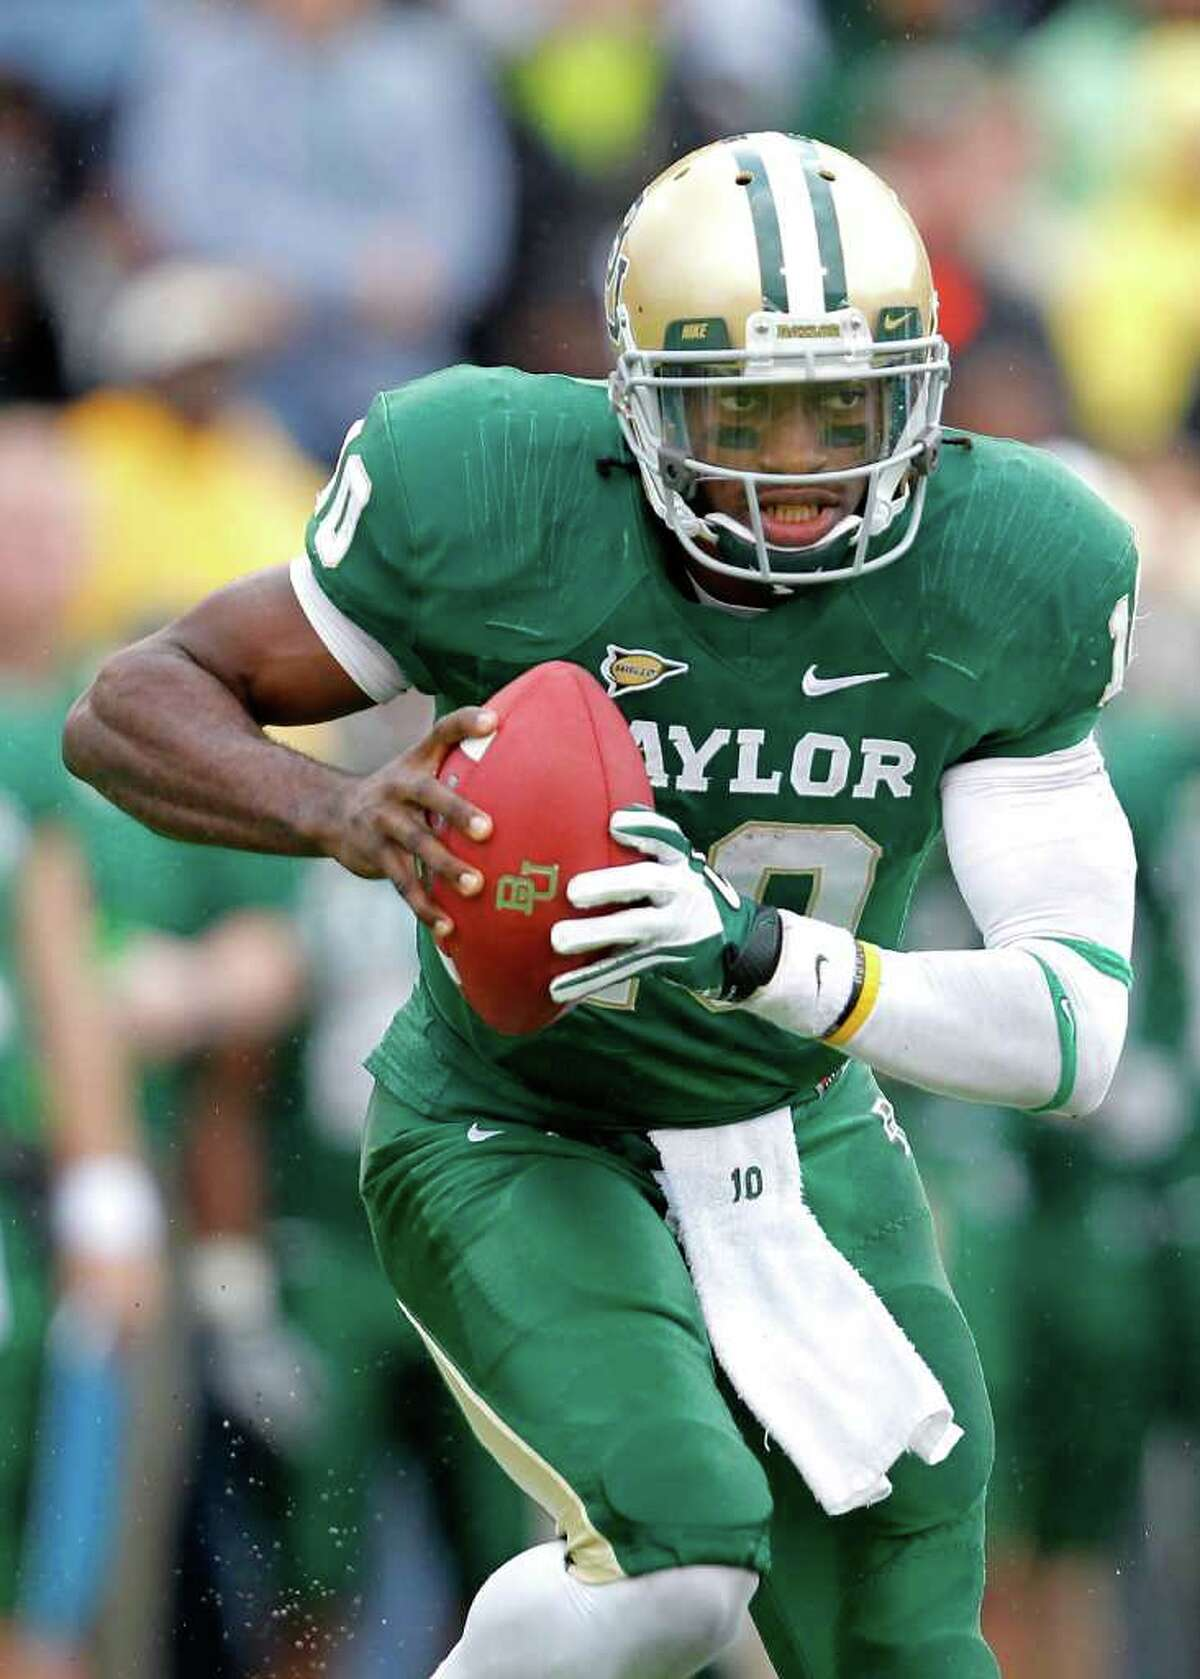 WACO, TX - DECEMBER 03: Robert Griffin III #10 of the Baylor Bears runs during a game against the Texas Longhorns at Floyd Casey Stadium on December 3, 2011 in Waco, Texas.